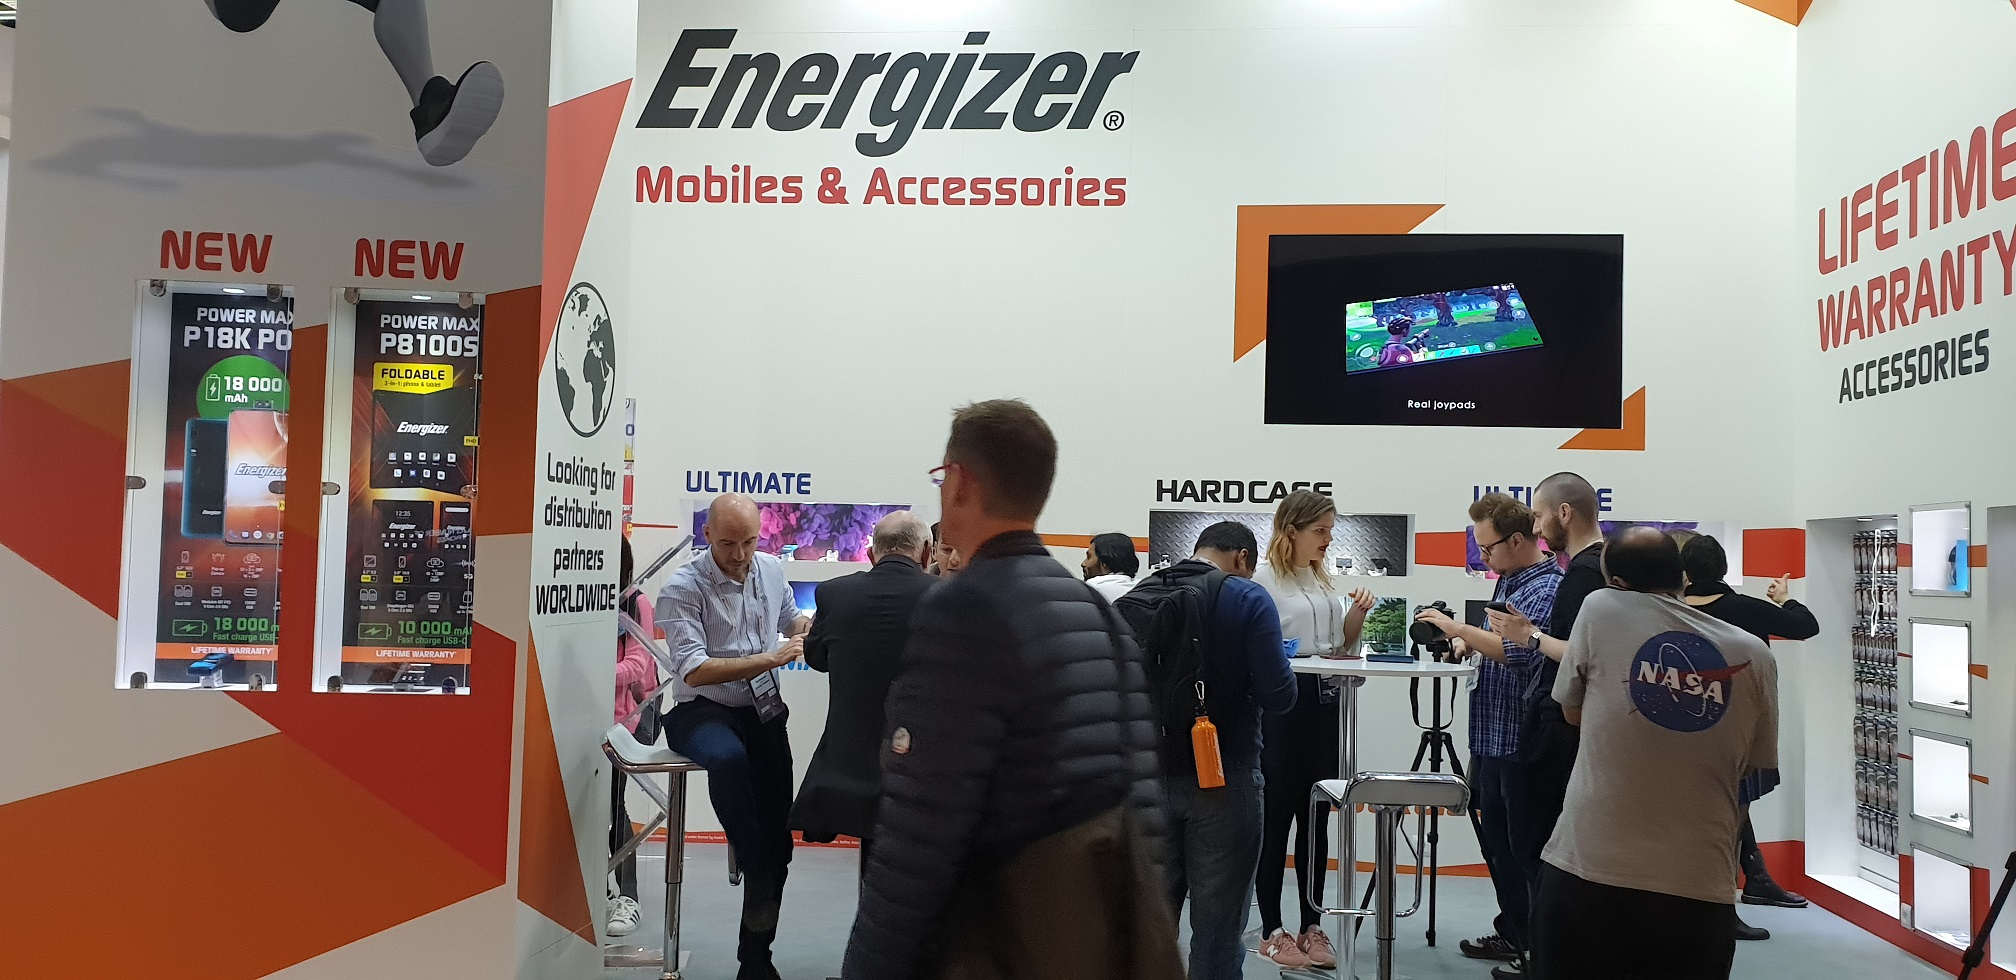 stand mwc 2019 energizer